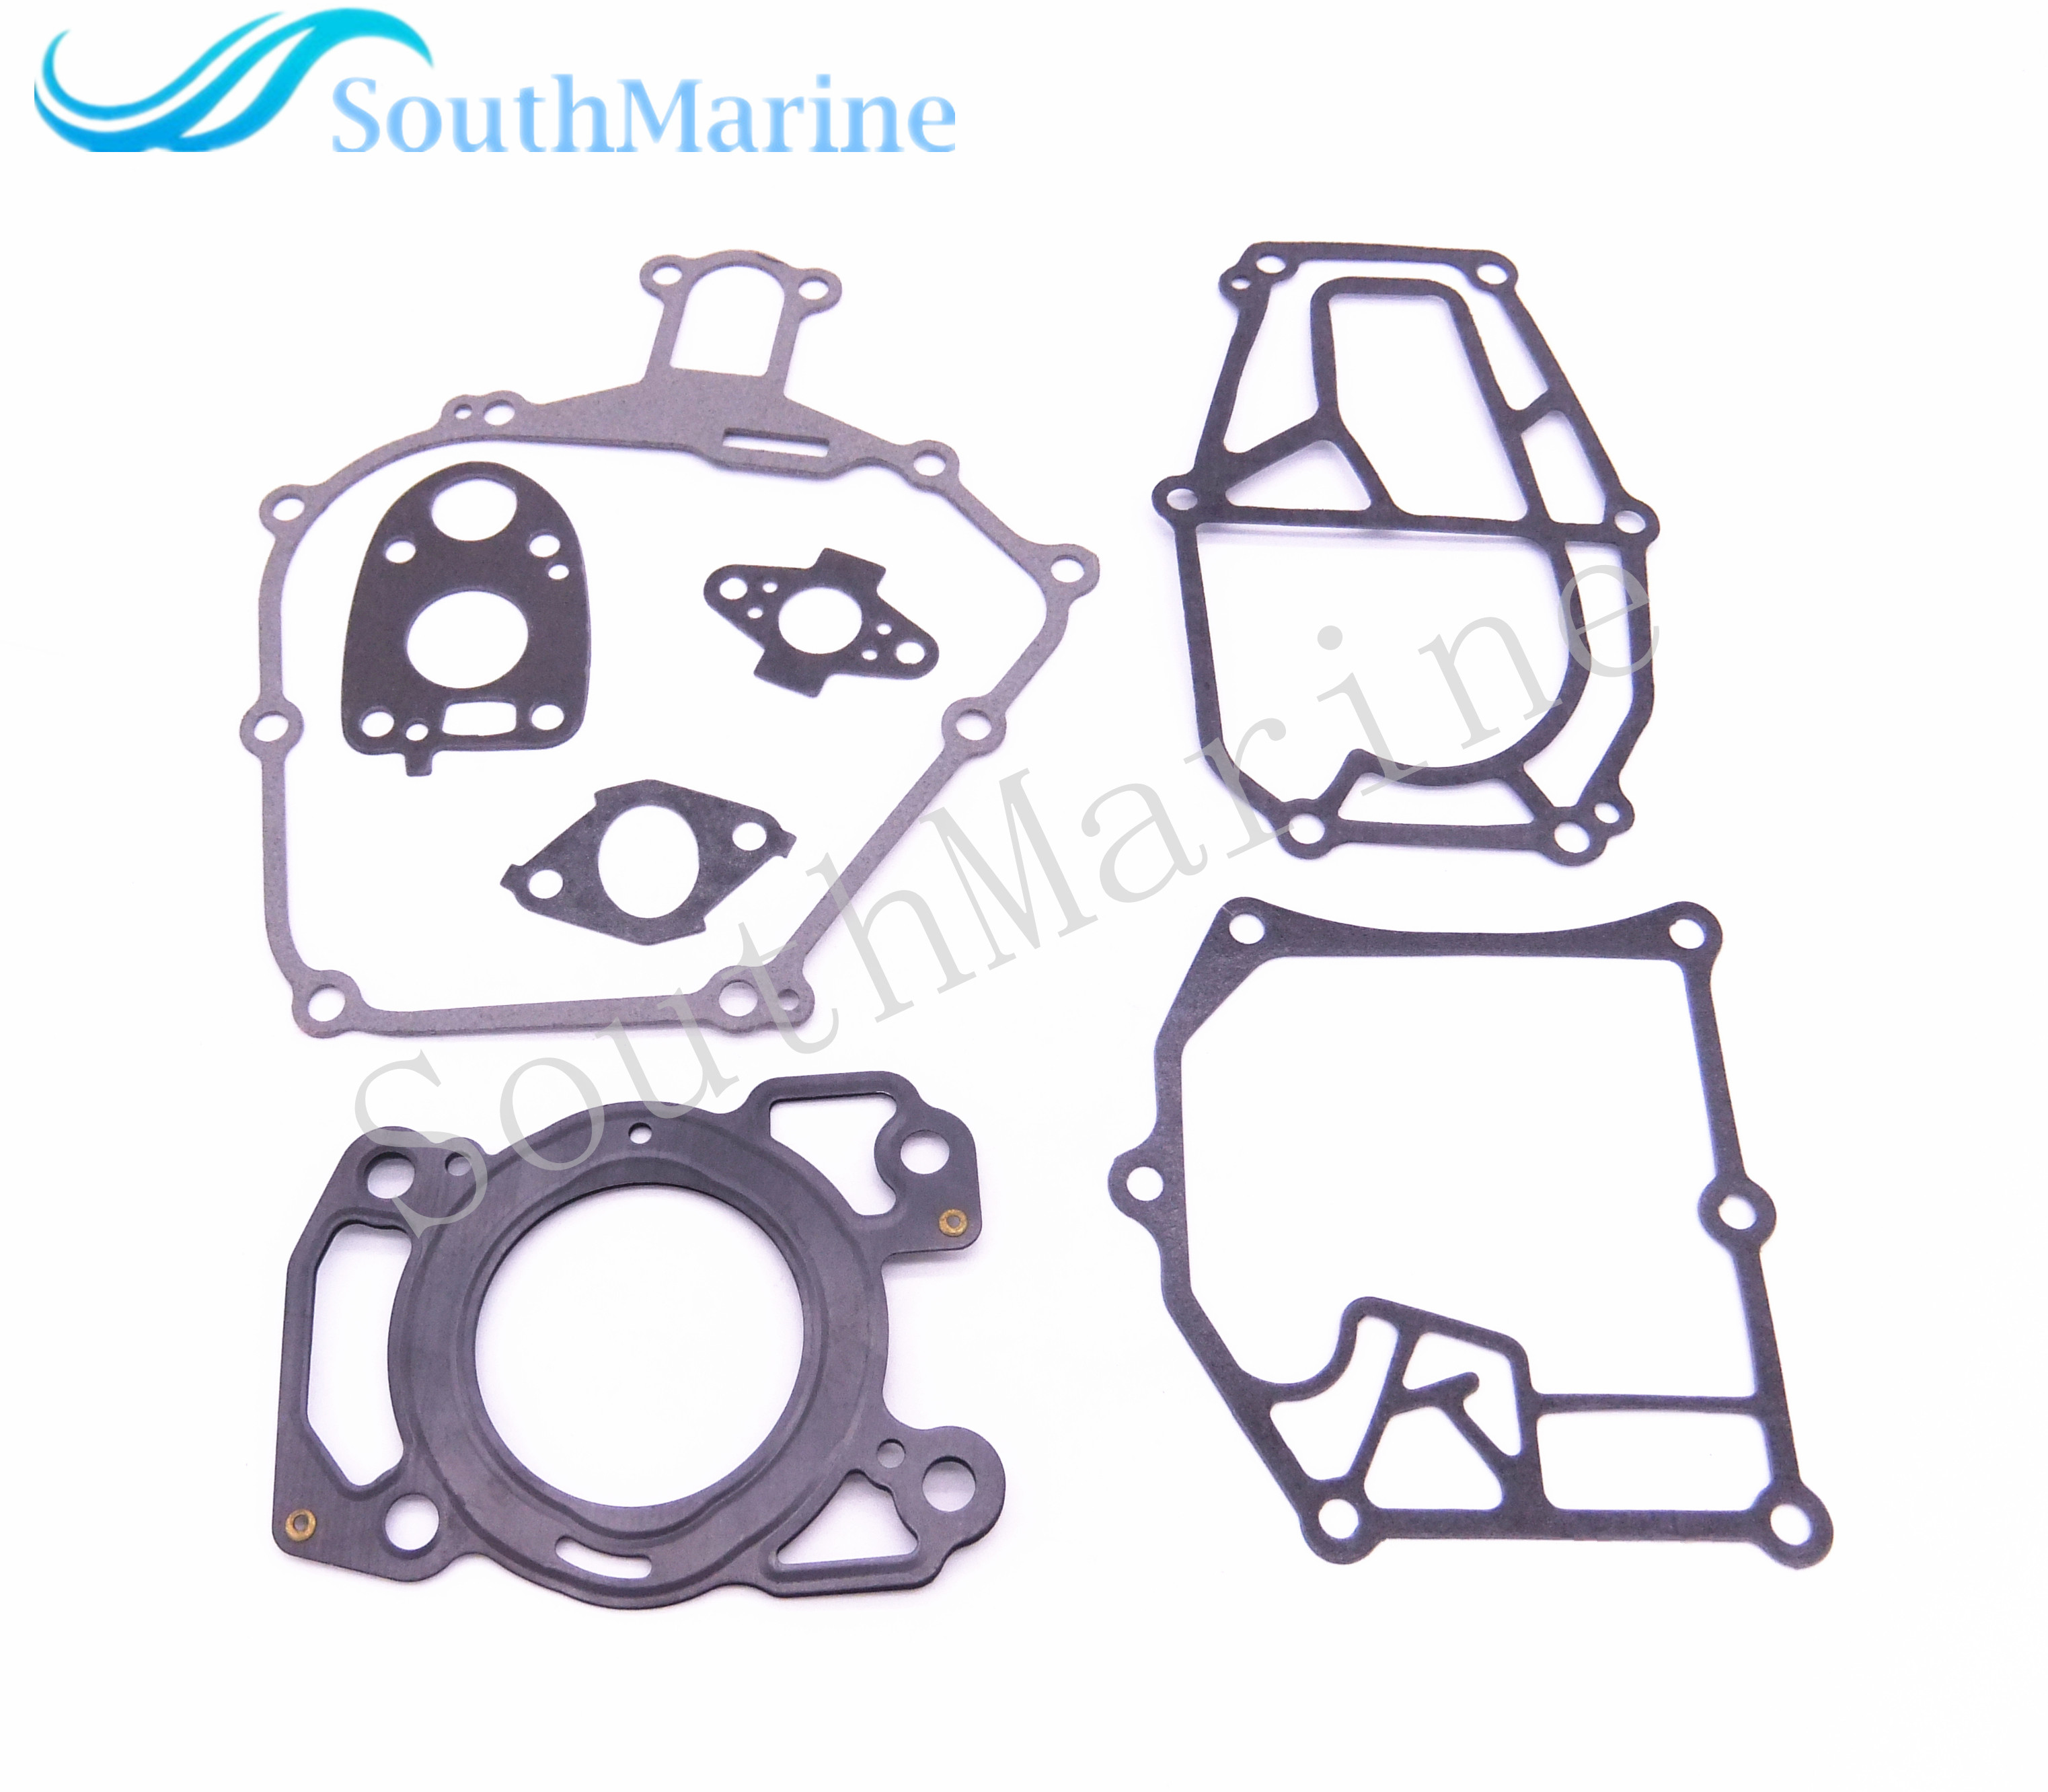 Outboard Engine Boat Motor Complete Power Head Seal Gasket Kit for Yamaha F2.5 Free Shipping